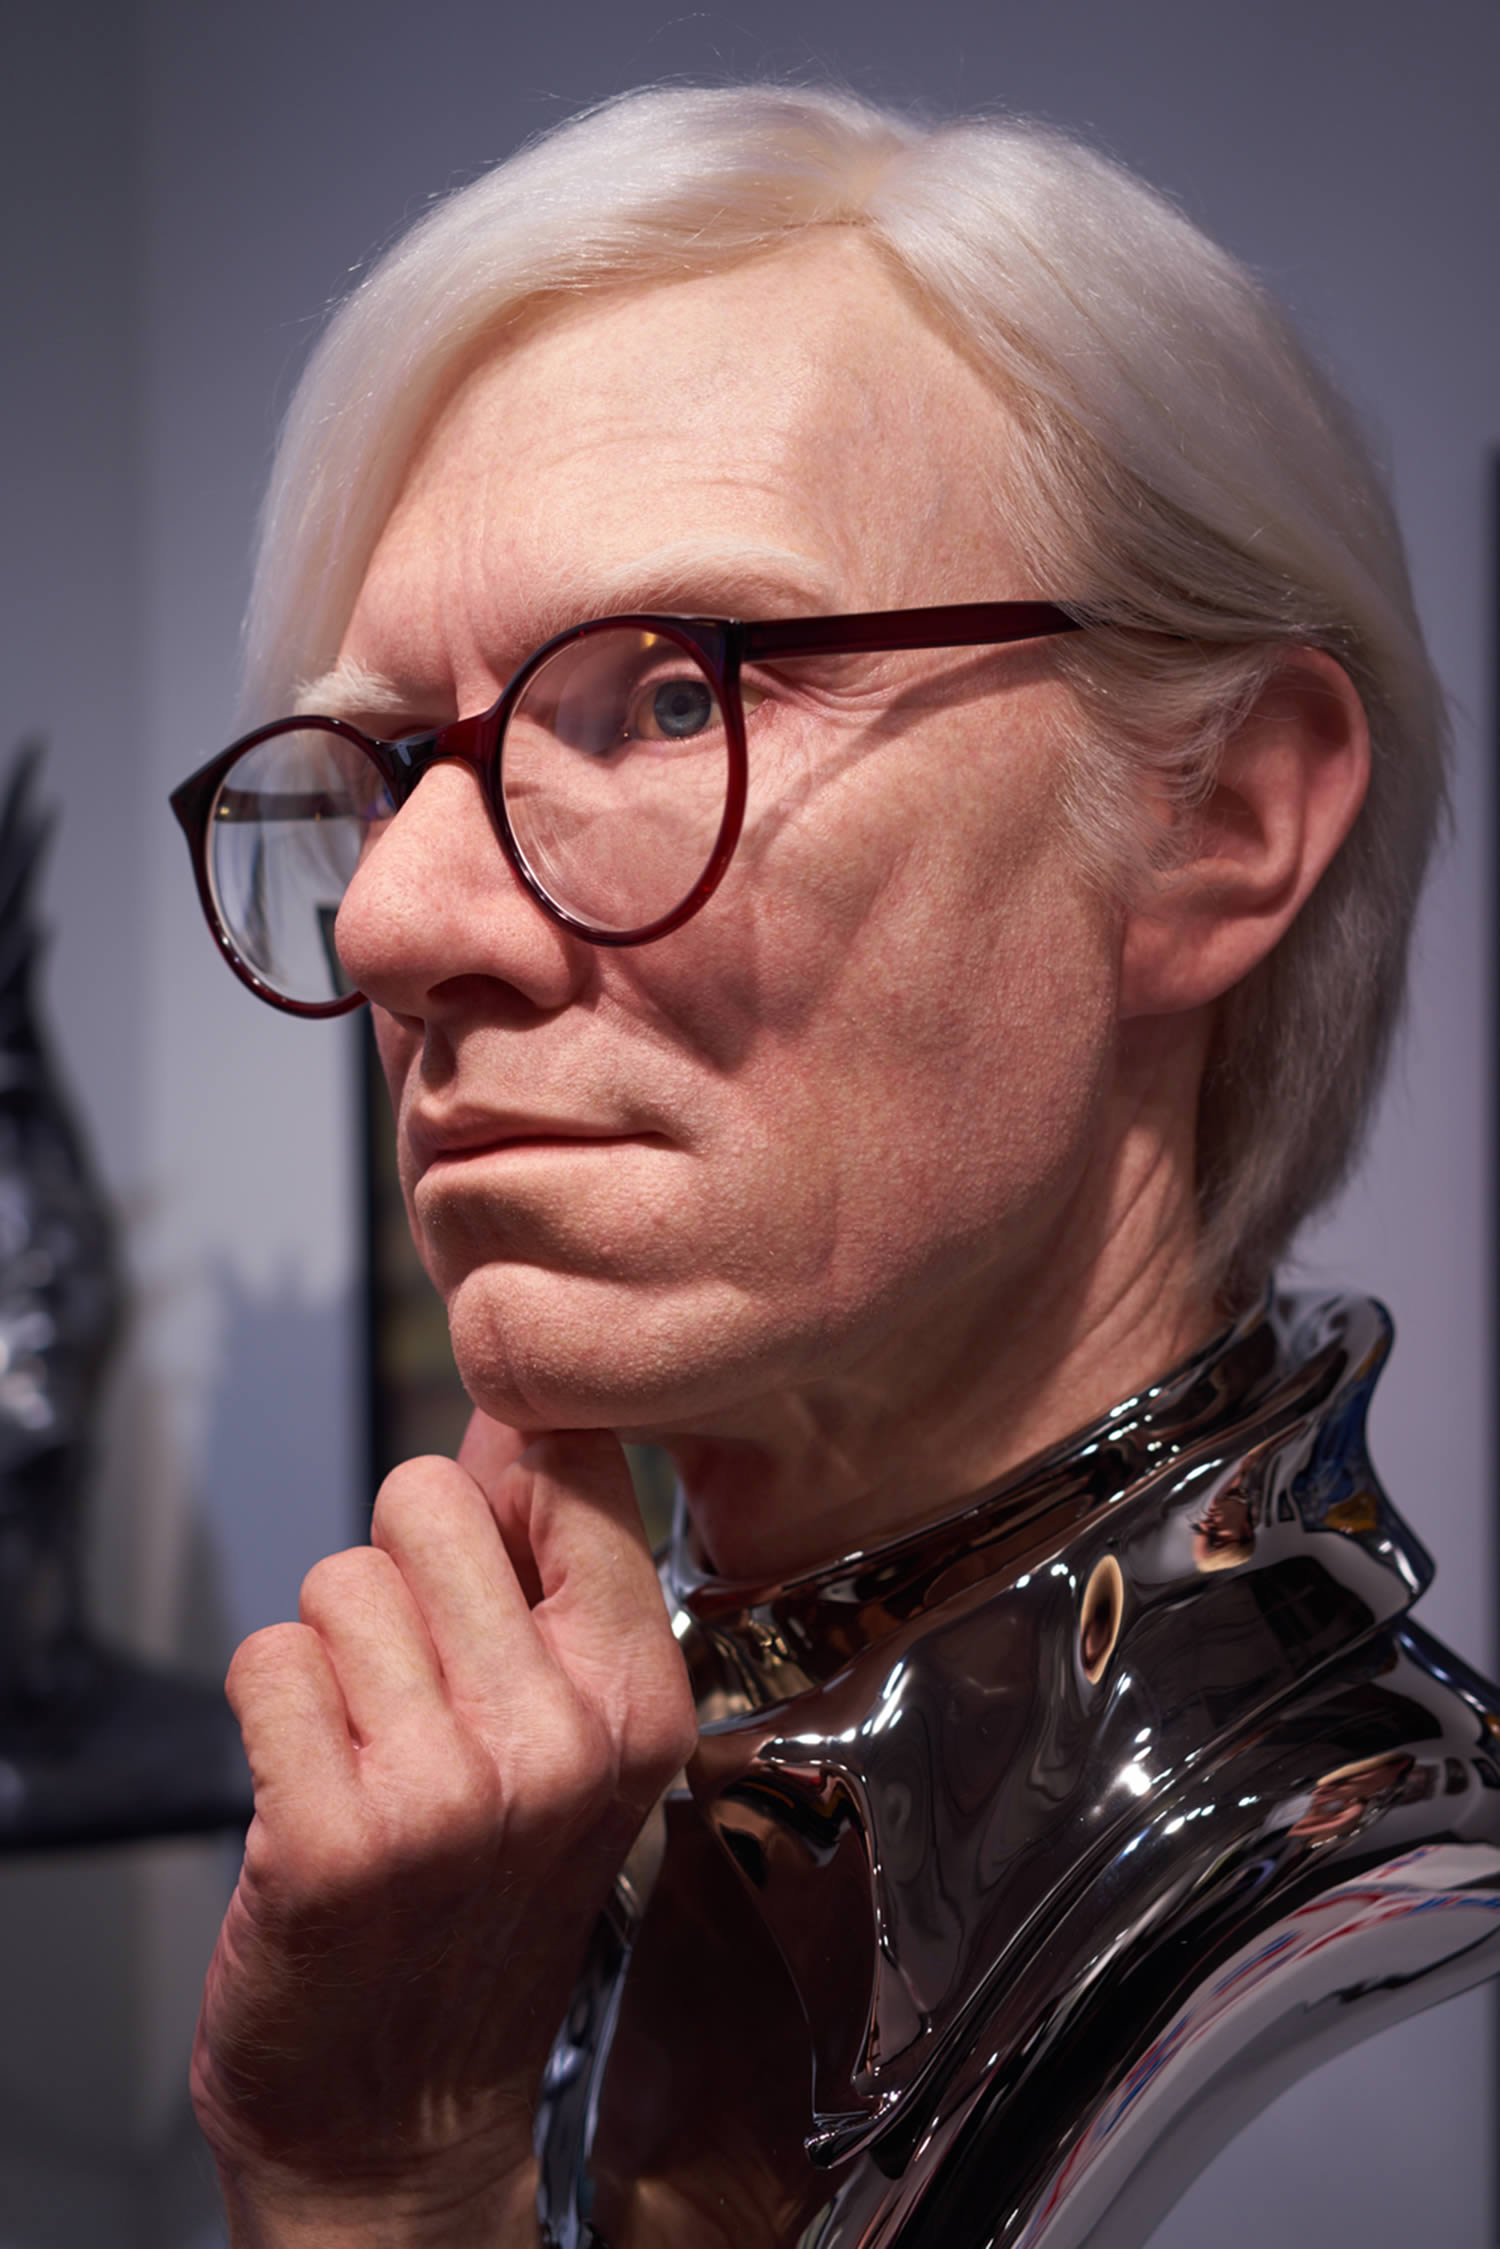 andy warhol, realistic sculpture